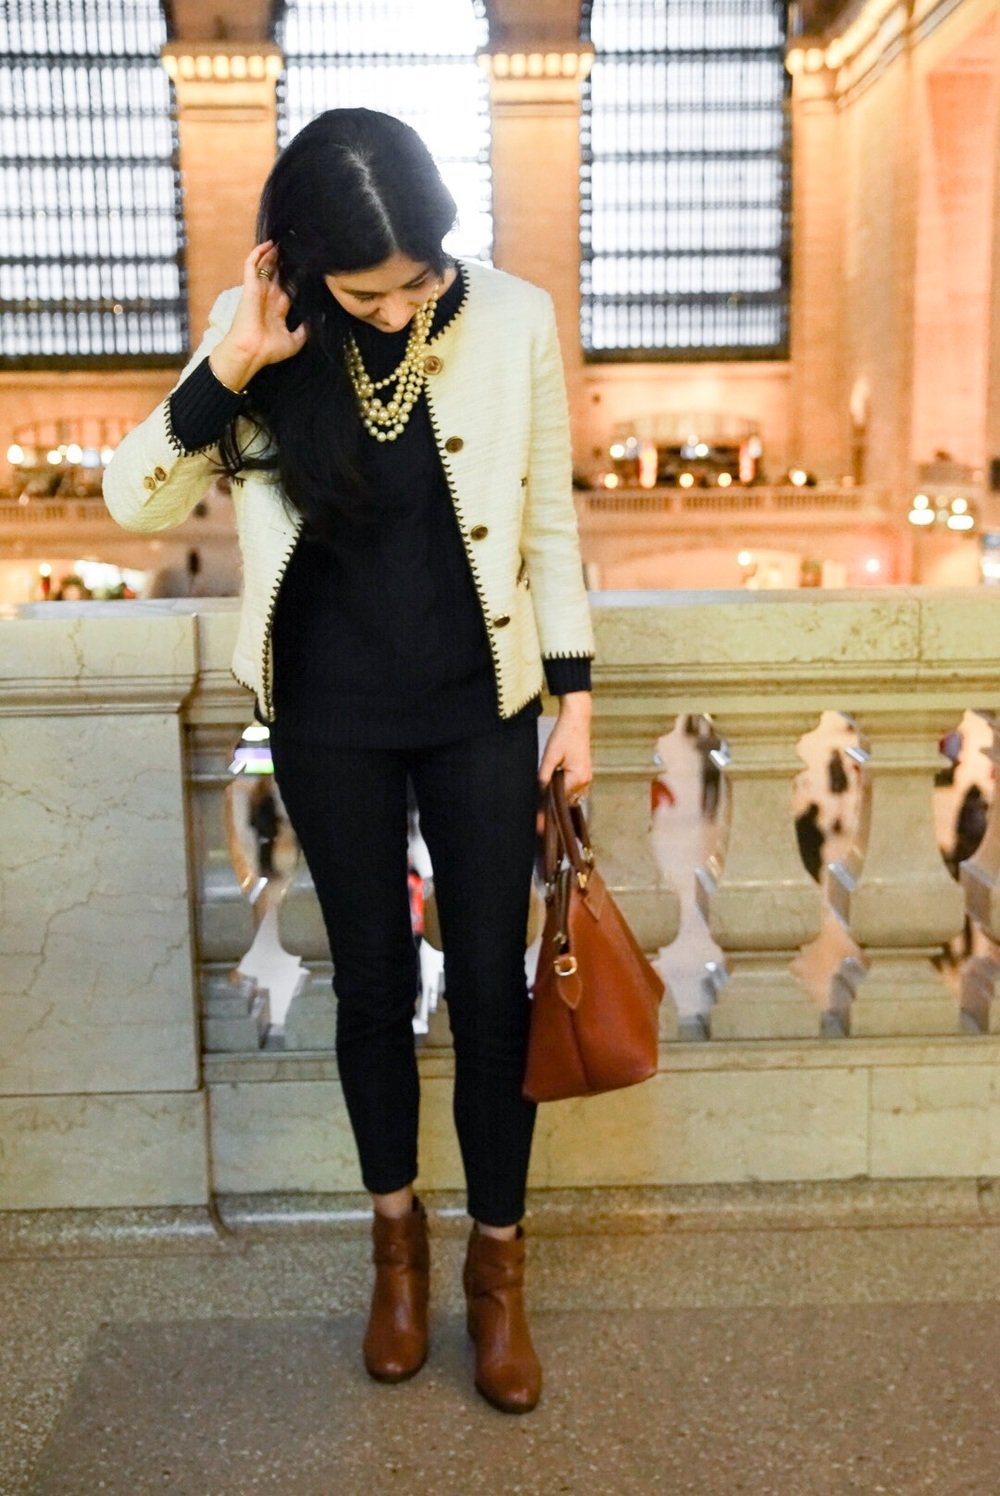 Zara Tweed Boucle Jacket J Crew Pearls LOFT Skinny Jeans Cole Haan Ankle Boots Dooney & Bourke Purse LL Bean Sweater 6.jpg